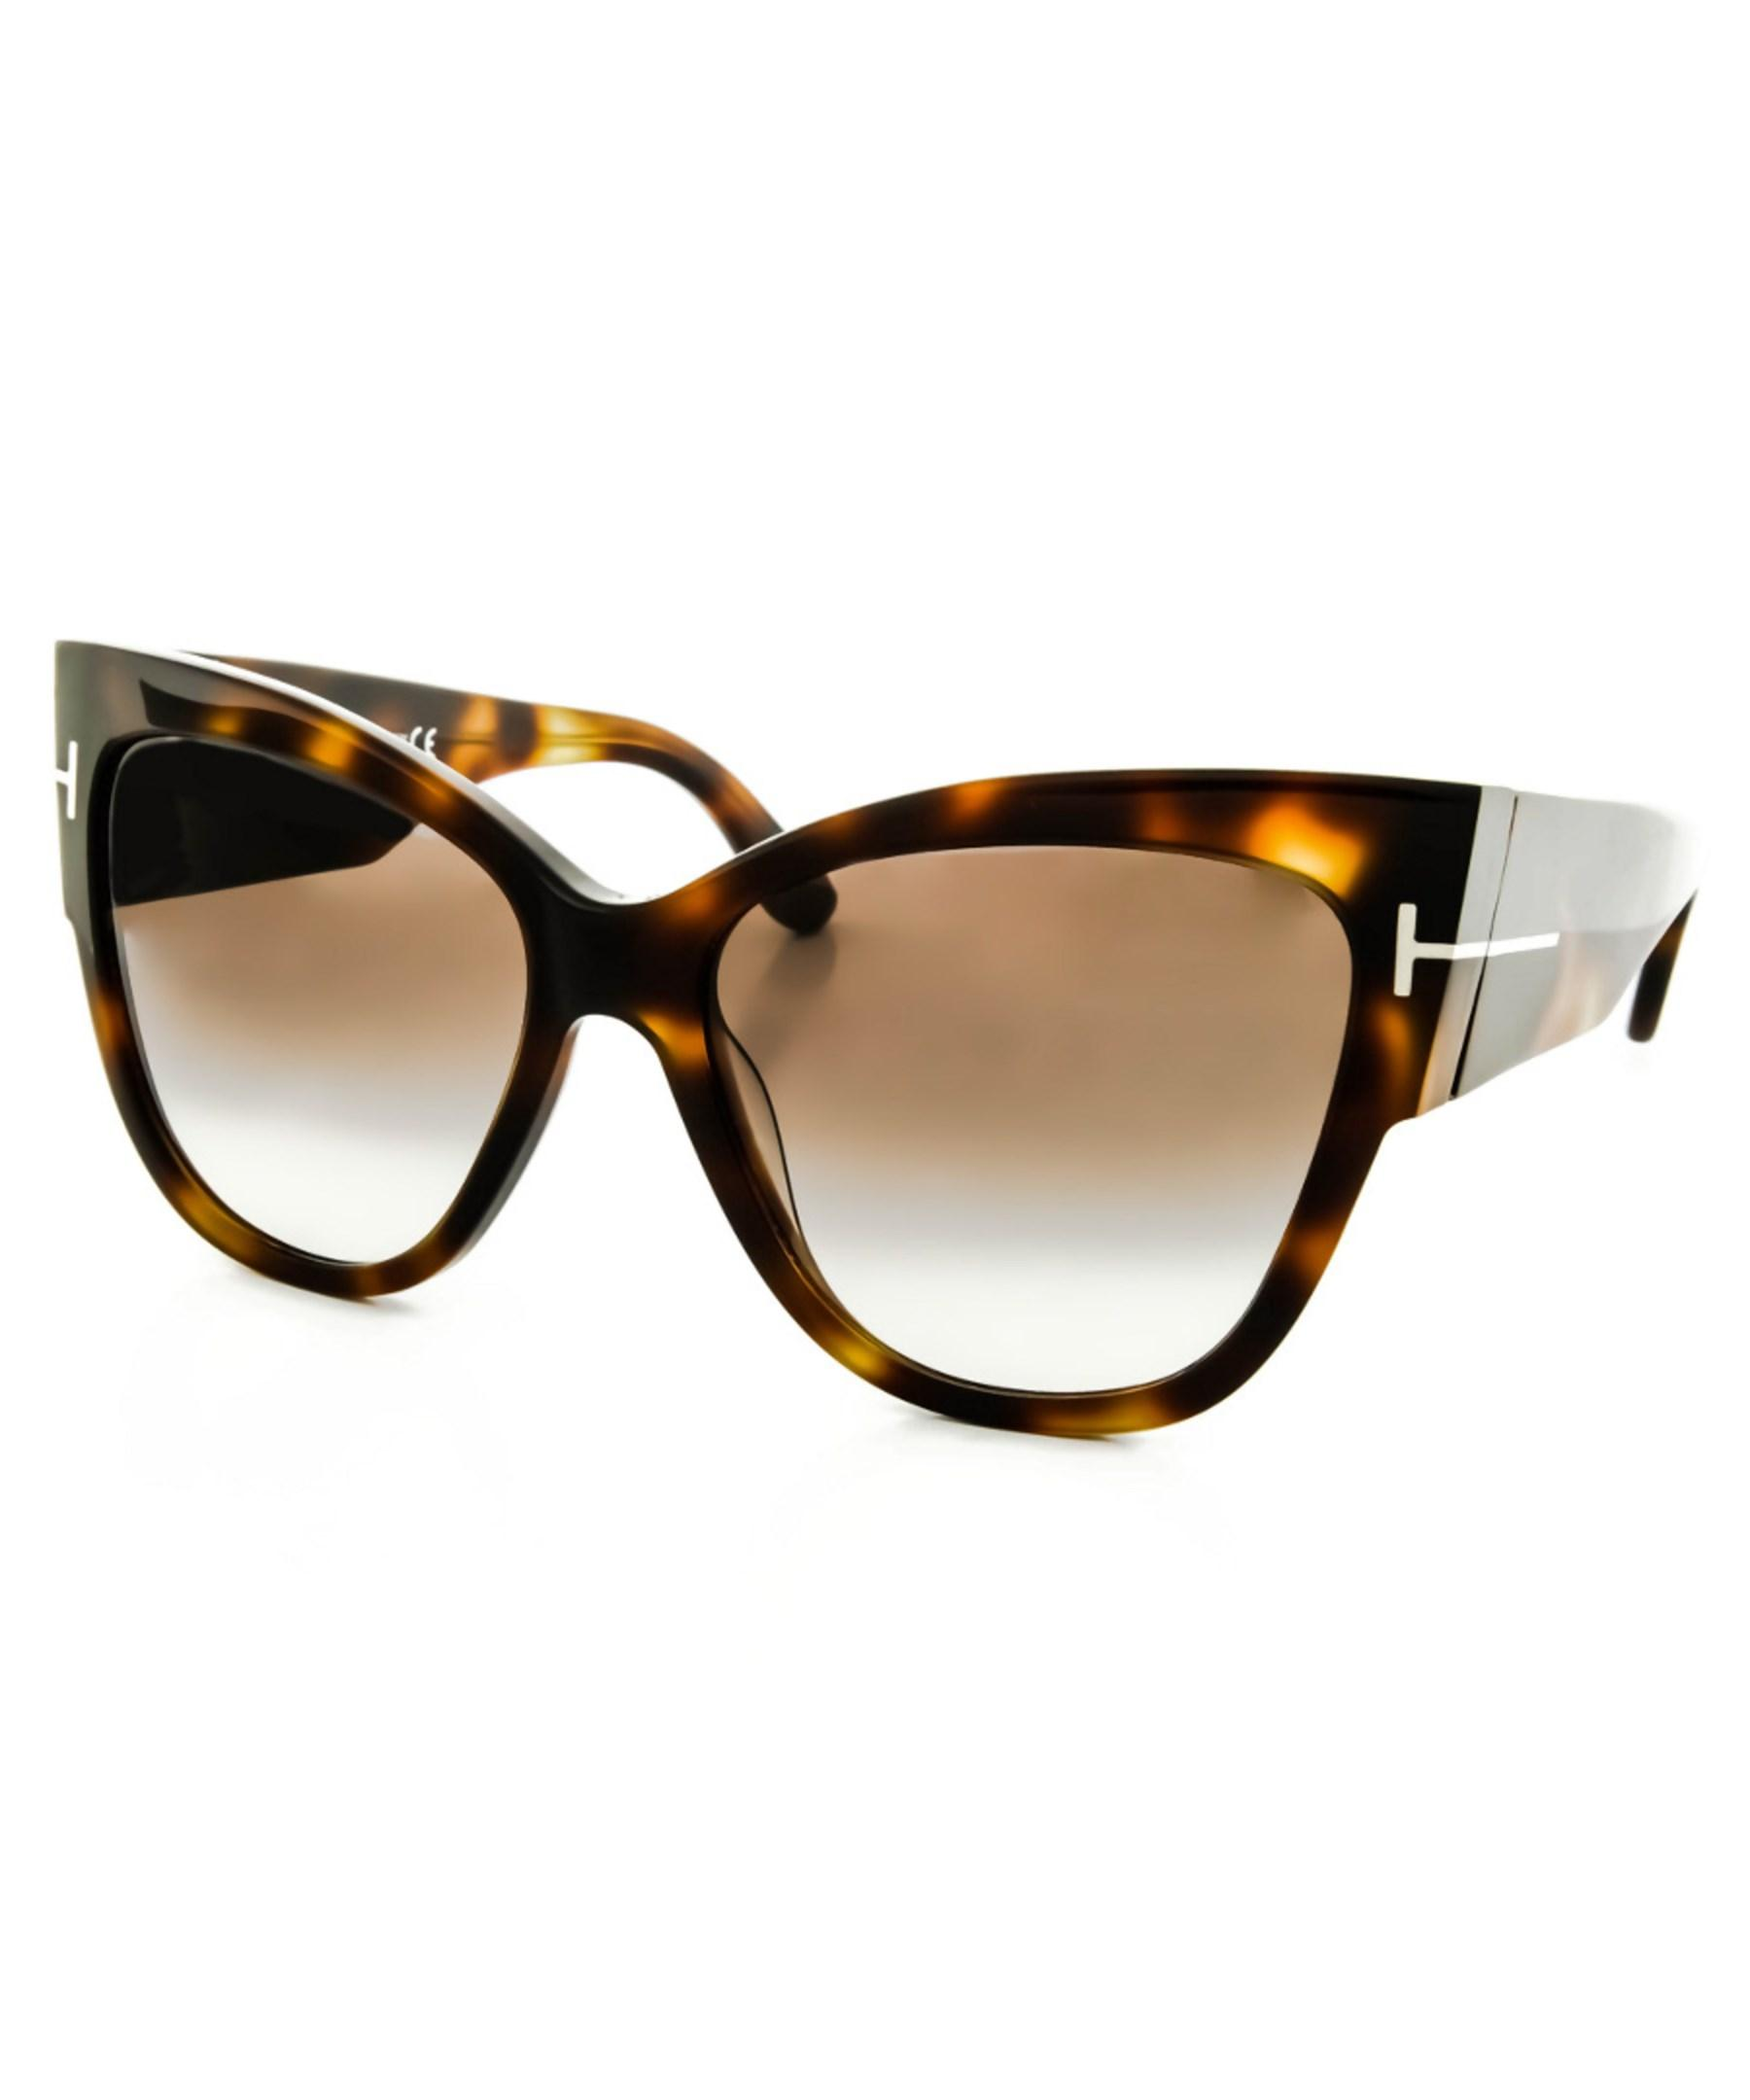 tom ford women 39 s ft0371 f sunglasses in brown lyst. Cars Review. Best American Auto & Cars Review